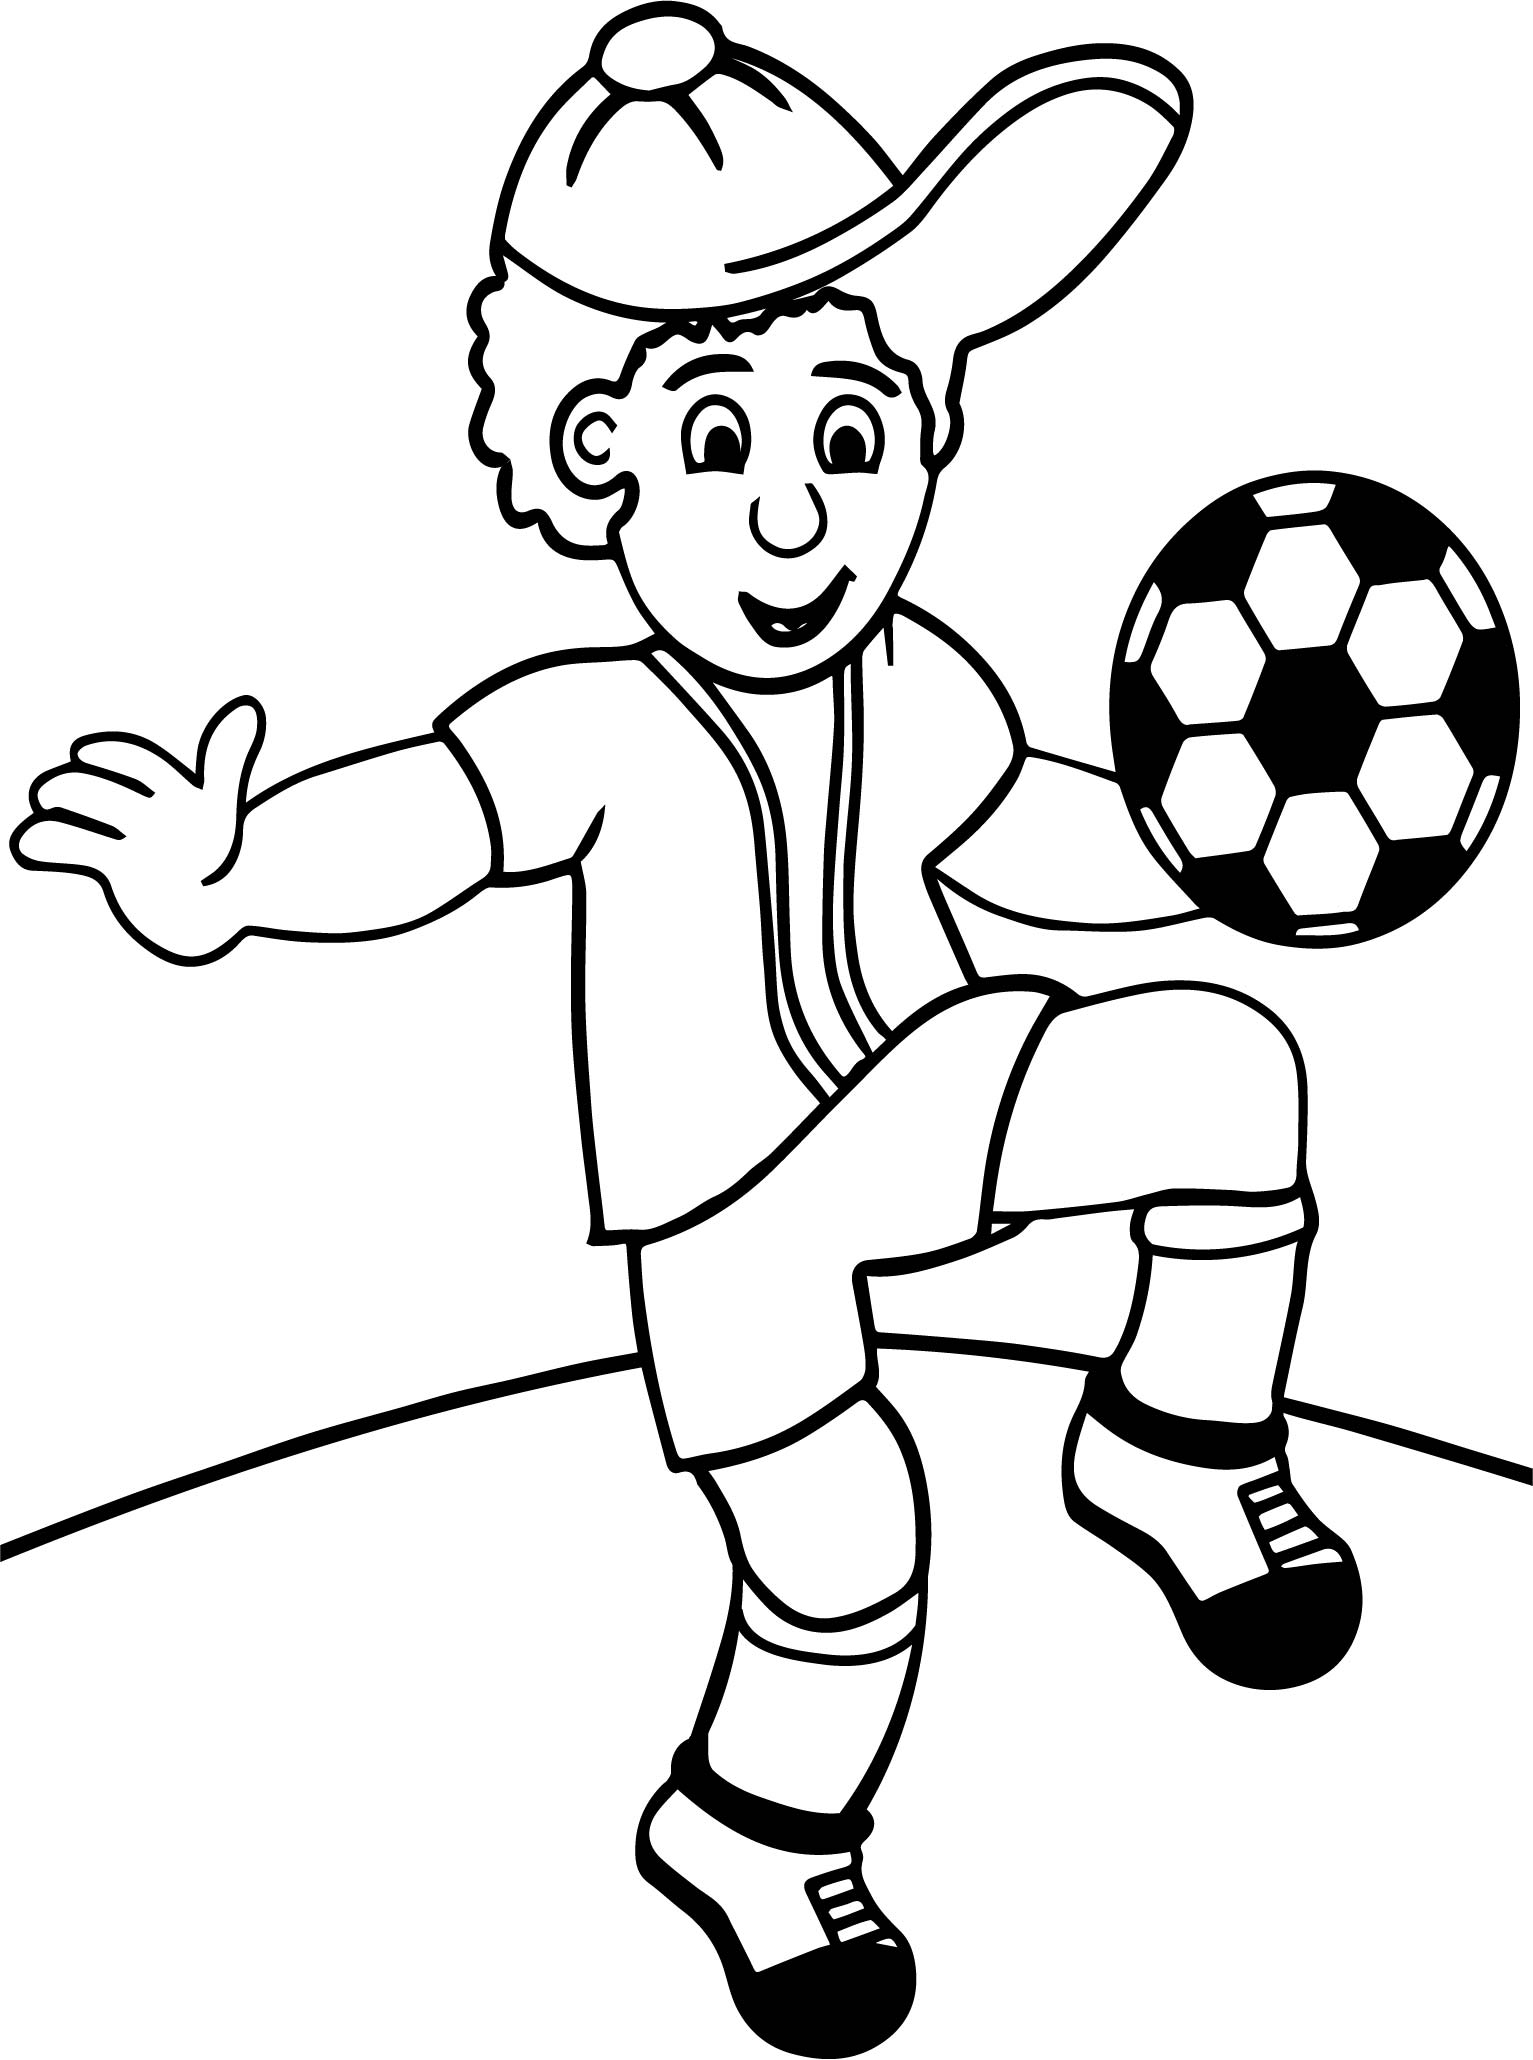 Running football player coloring pages